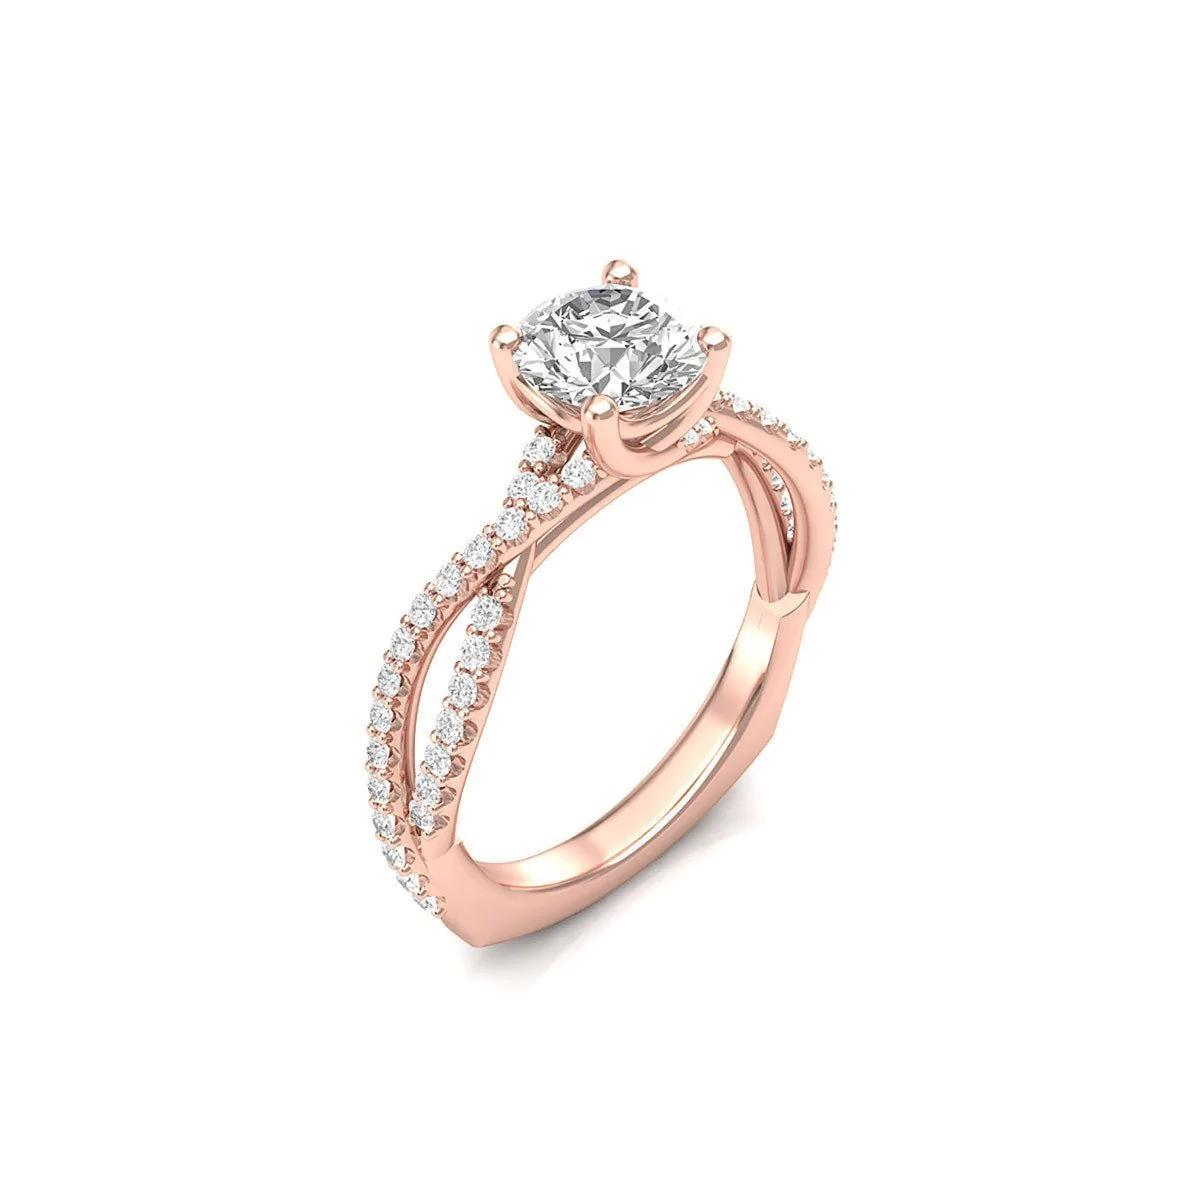 Twisted Shank Engagement Ring - UK T - US 9 5/8 - EU 61 1/2